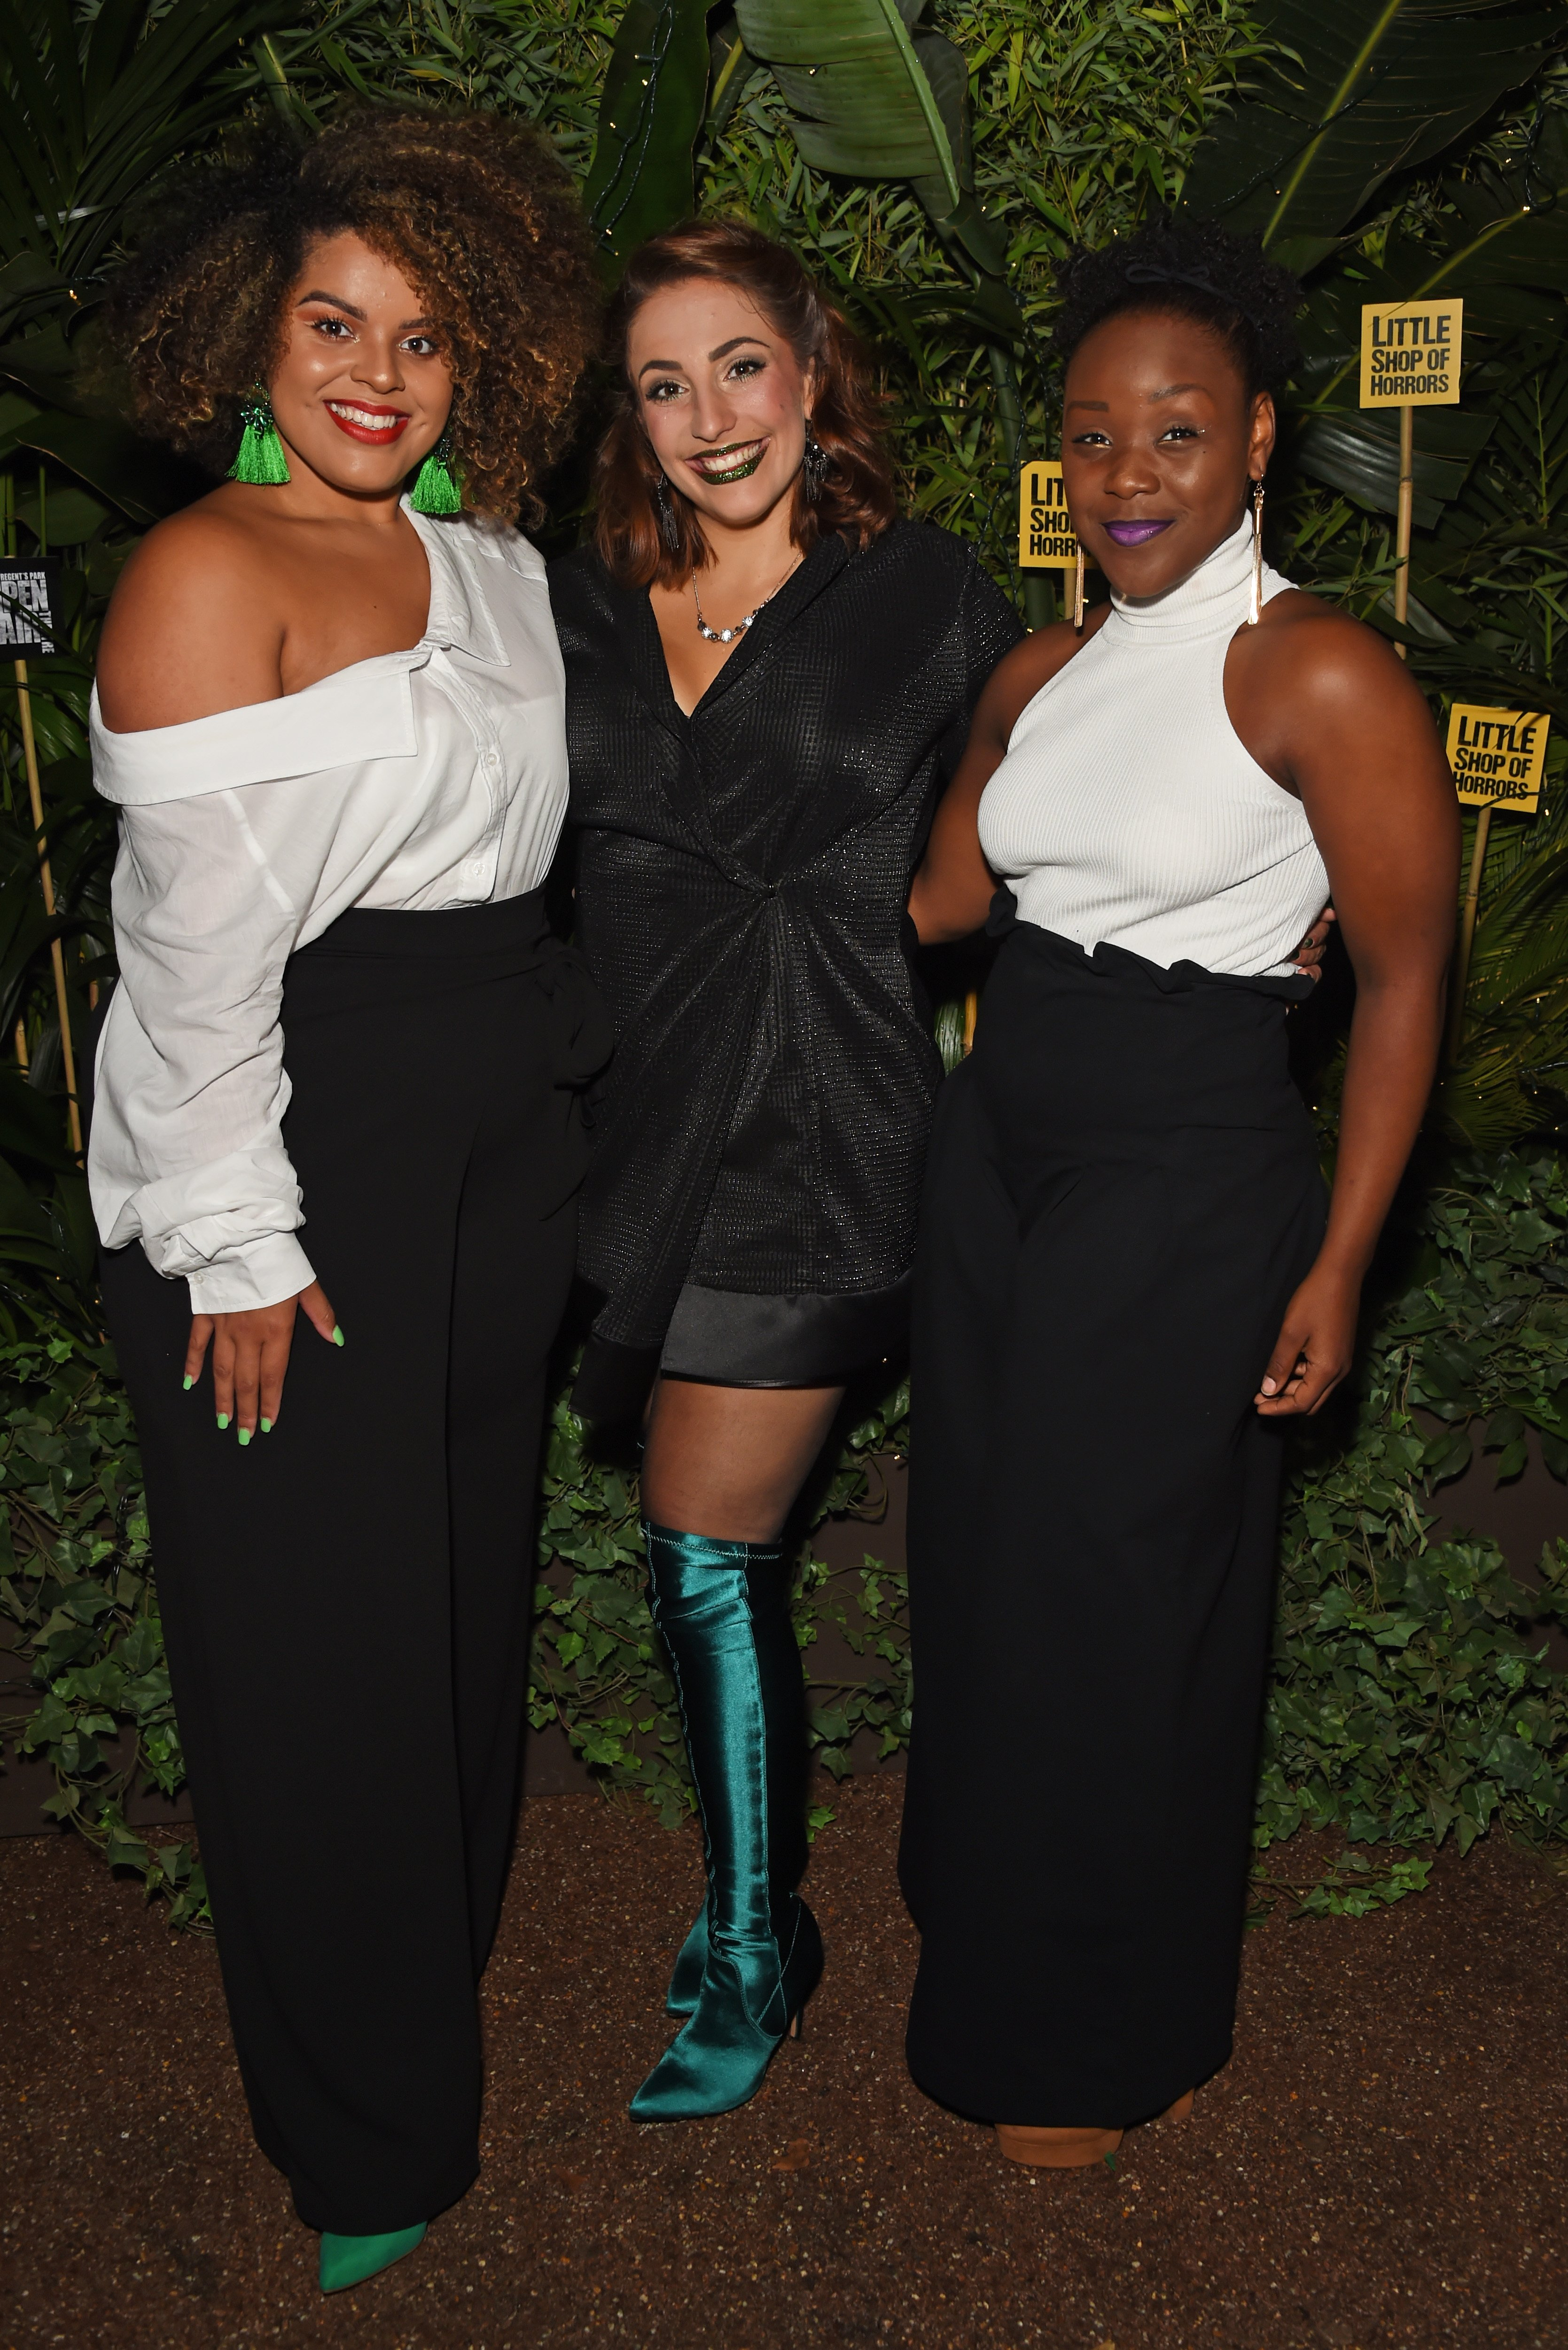 """Seyi Omooba (Right) with cast members at the press night after party for """"Little Shop Of Horrors"""" in London, England on Aug. 10, 2018 